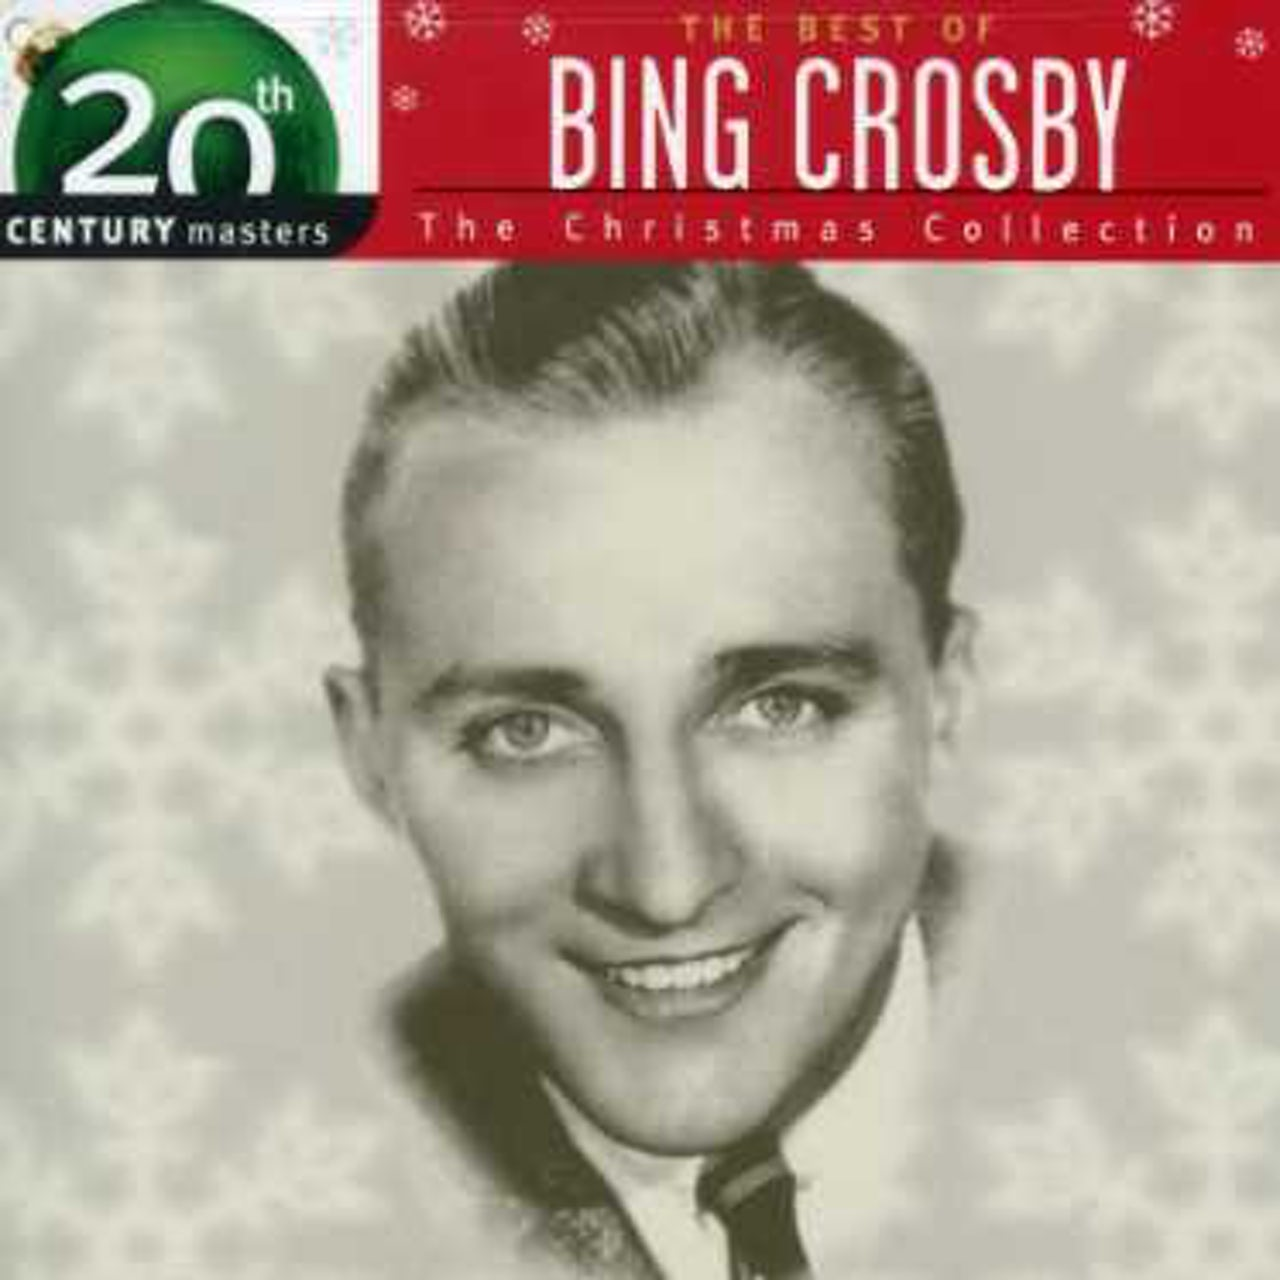 Bing Crosby Christmas Album.Bing Crosby Christmas Collection 20th Century Masters Cd